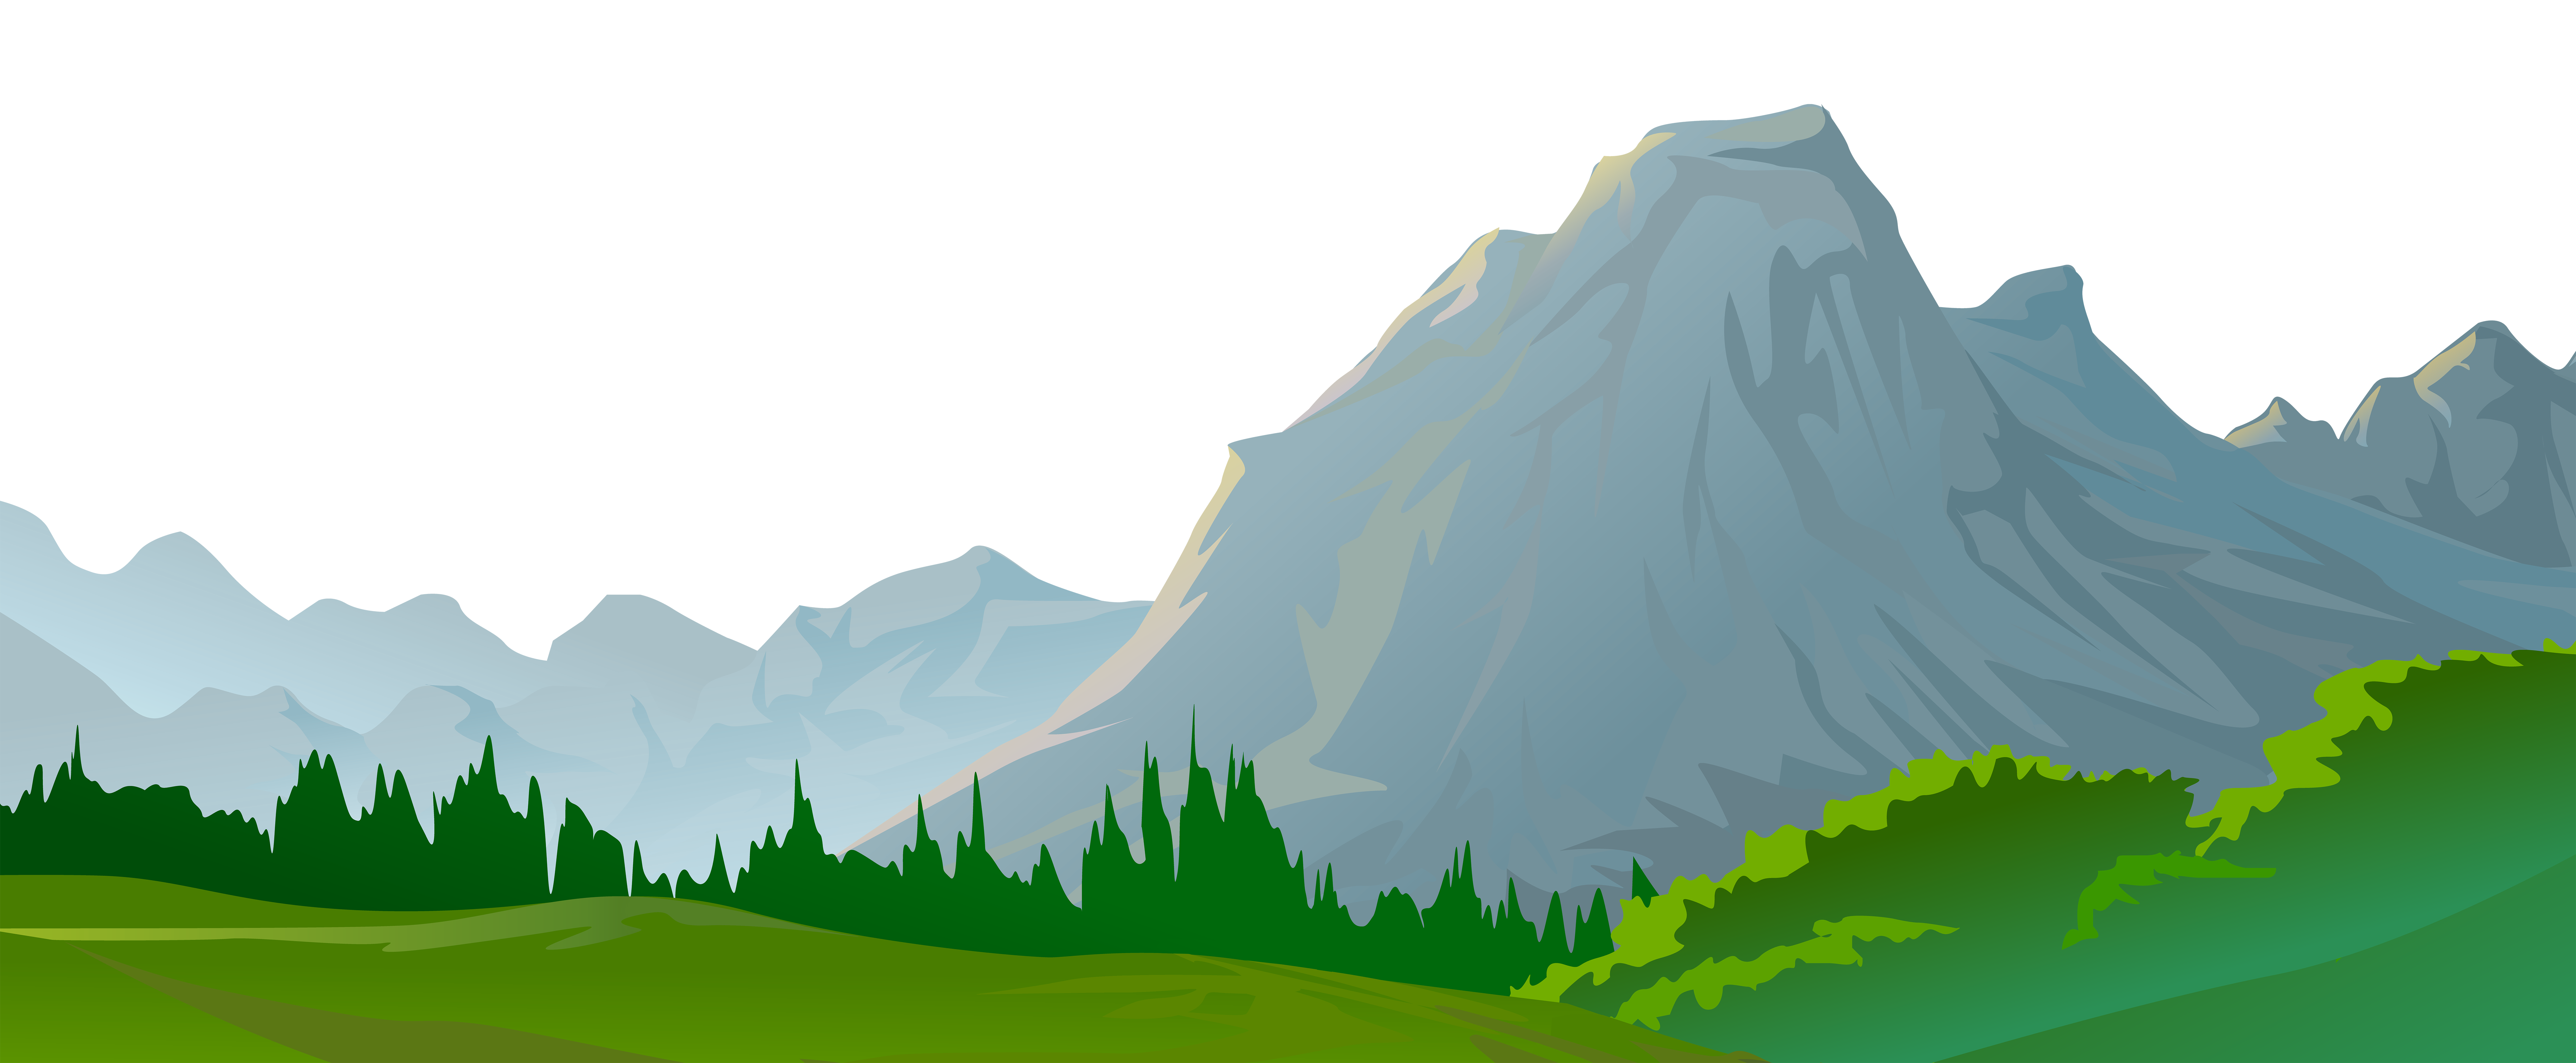 Mountain and tree clipart png free stock Mountain Ground Decorative Transparent Image | Gallery Yopriceville ... png free stock